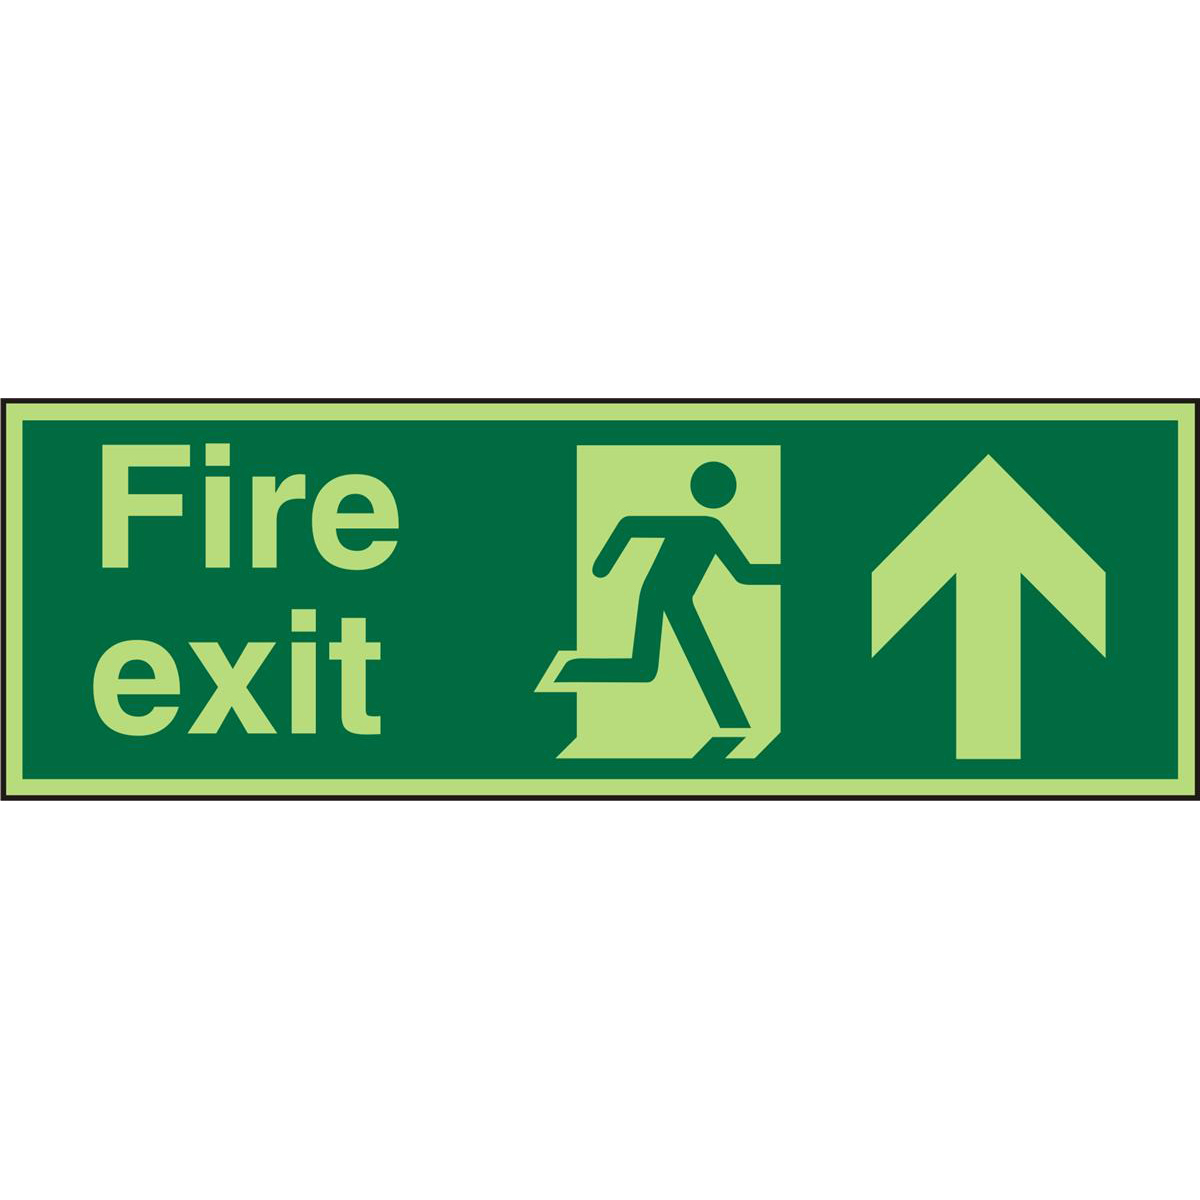 PhotolumSign 2mm 450x150 FireExit Man Running Right&Arrow Up Ref PACSP129450x150 *Up to 10 Day Leadtime*